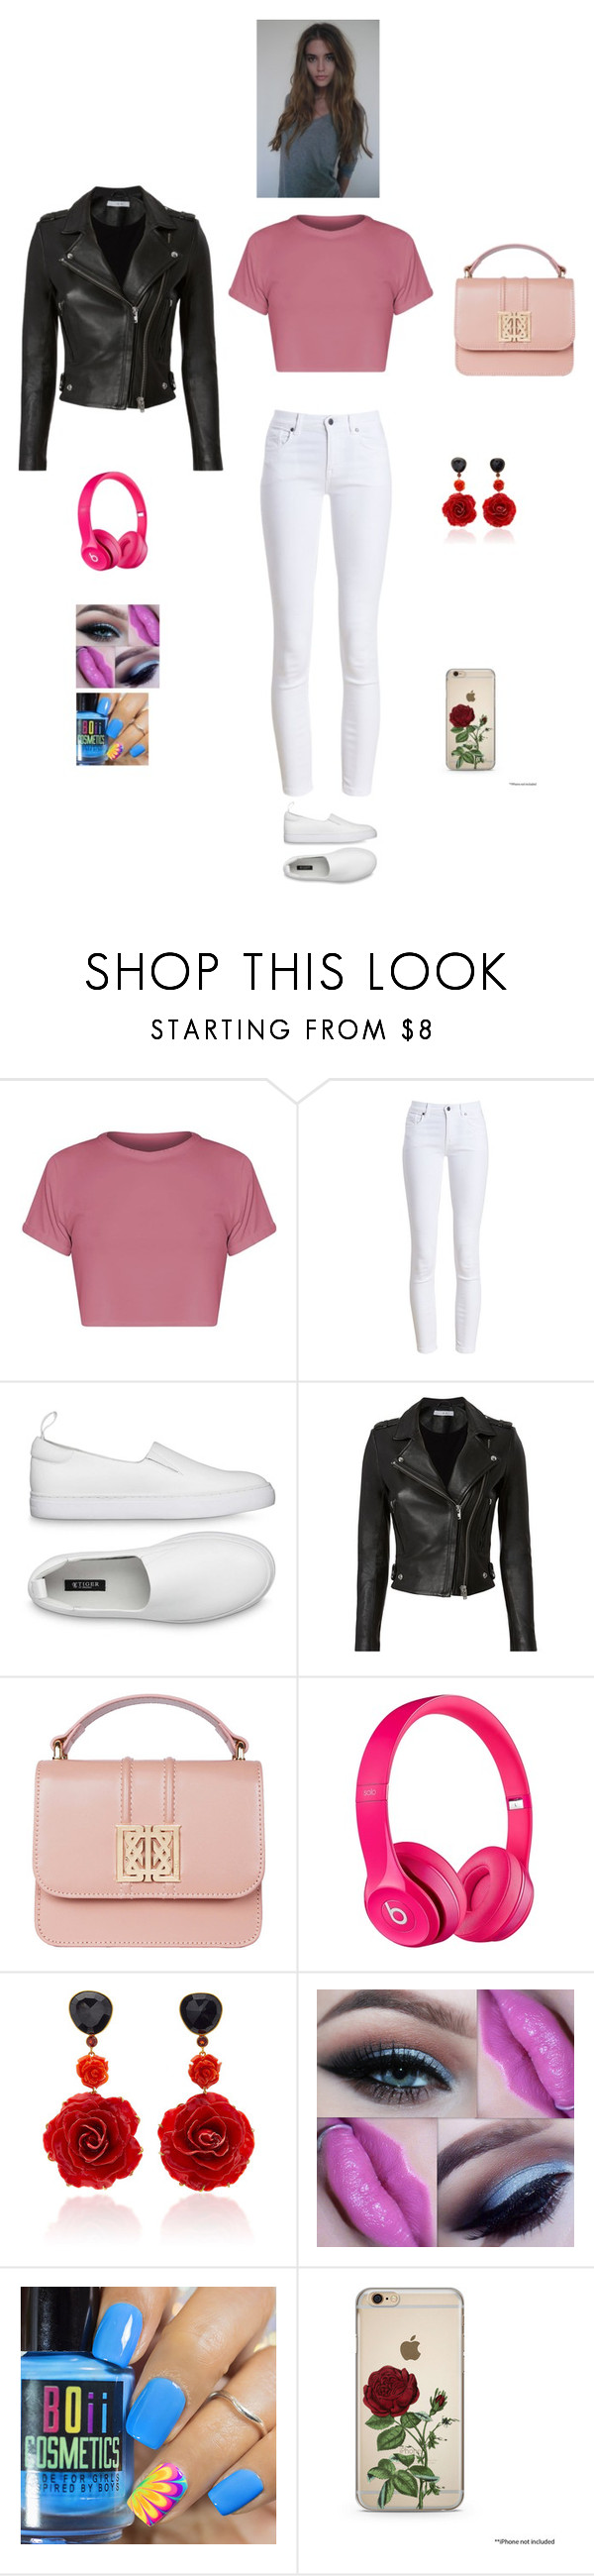 """K B F F"" by queen-kaitlyn ❤ liked on Polyvore featuring Barbour, IRO and Bahina"